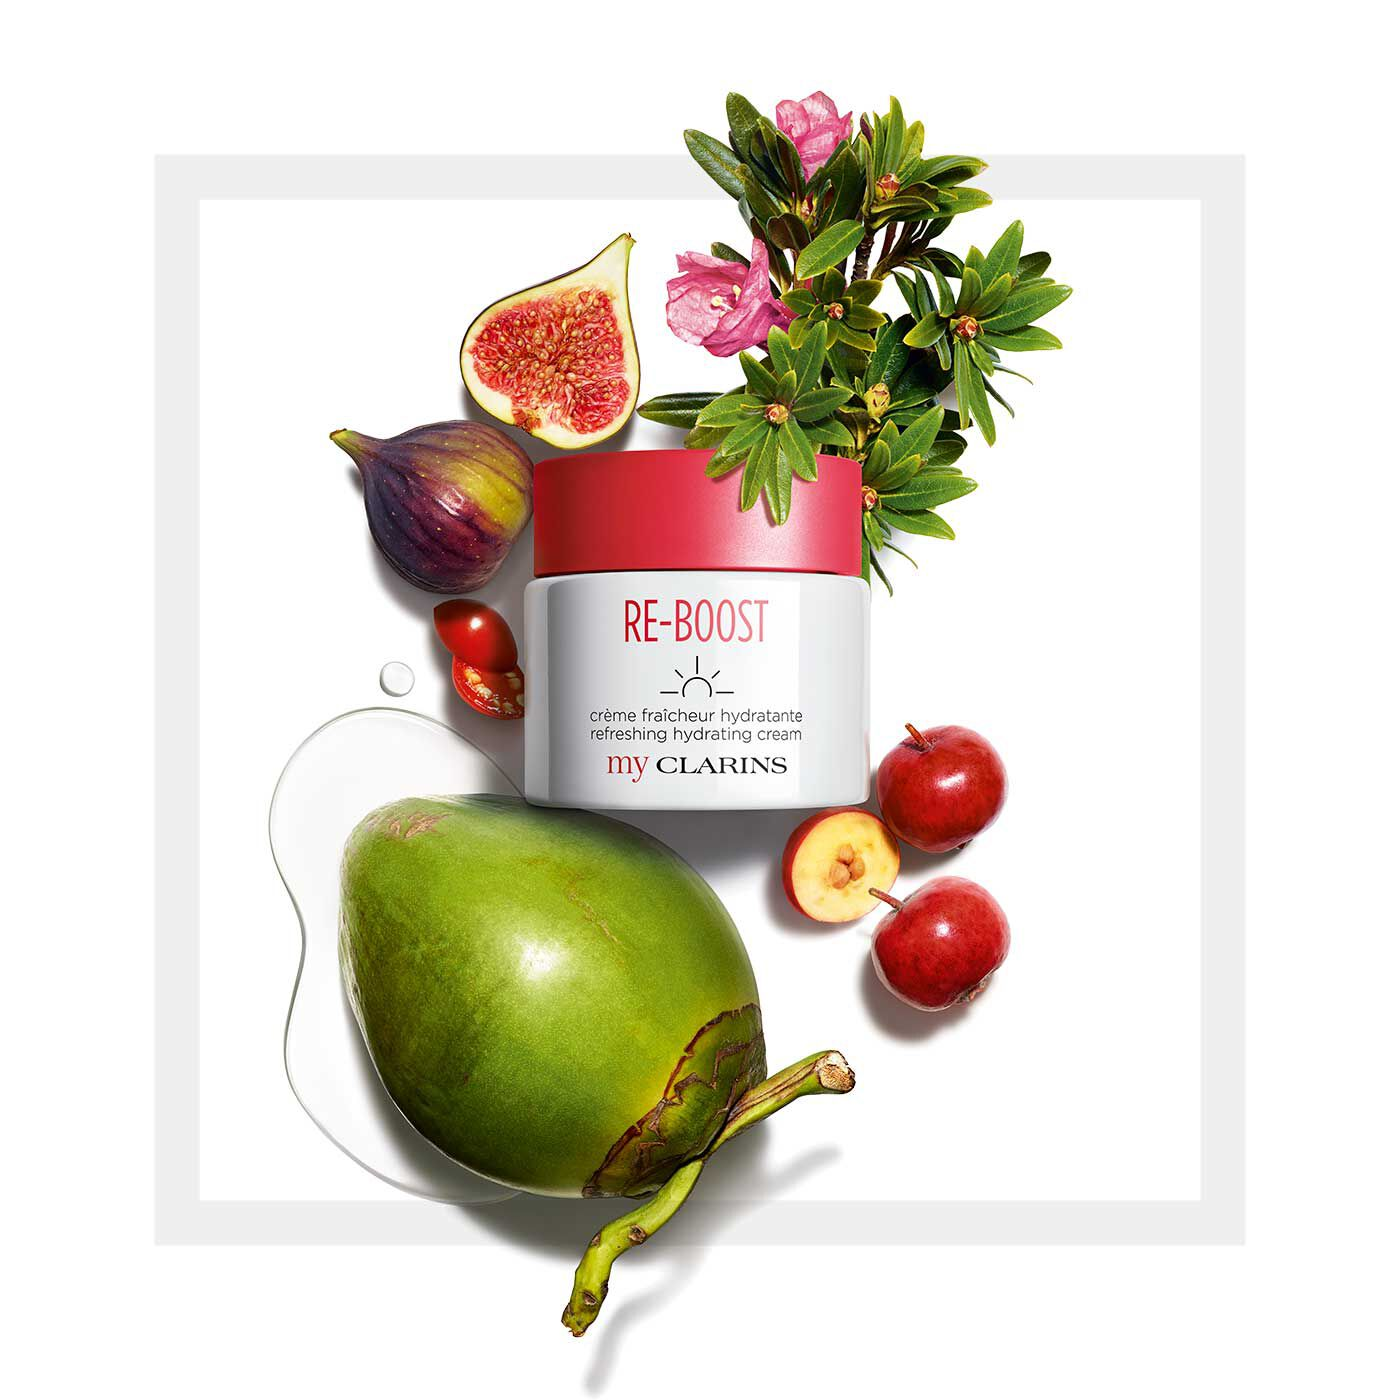 My Clarins RE-BOOST refreshing hydrating cream